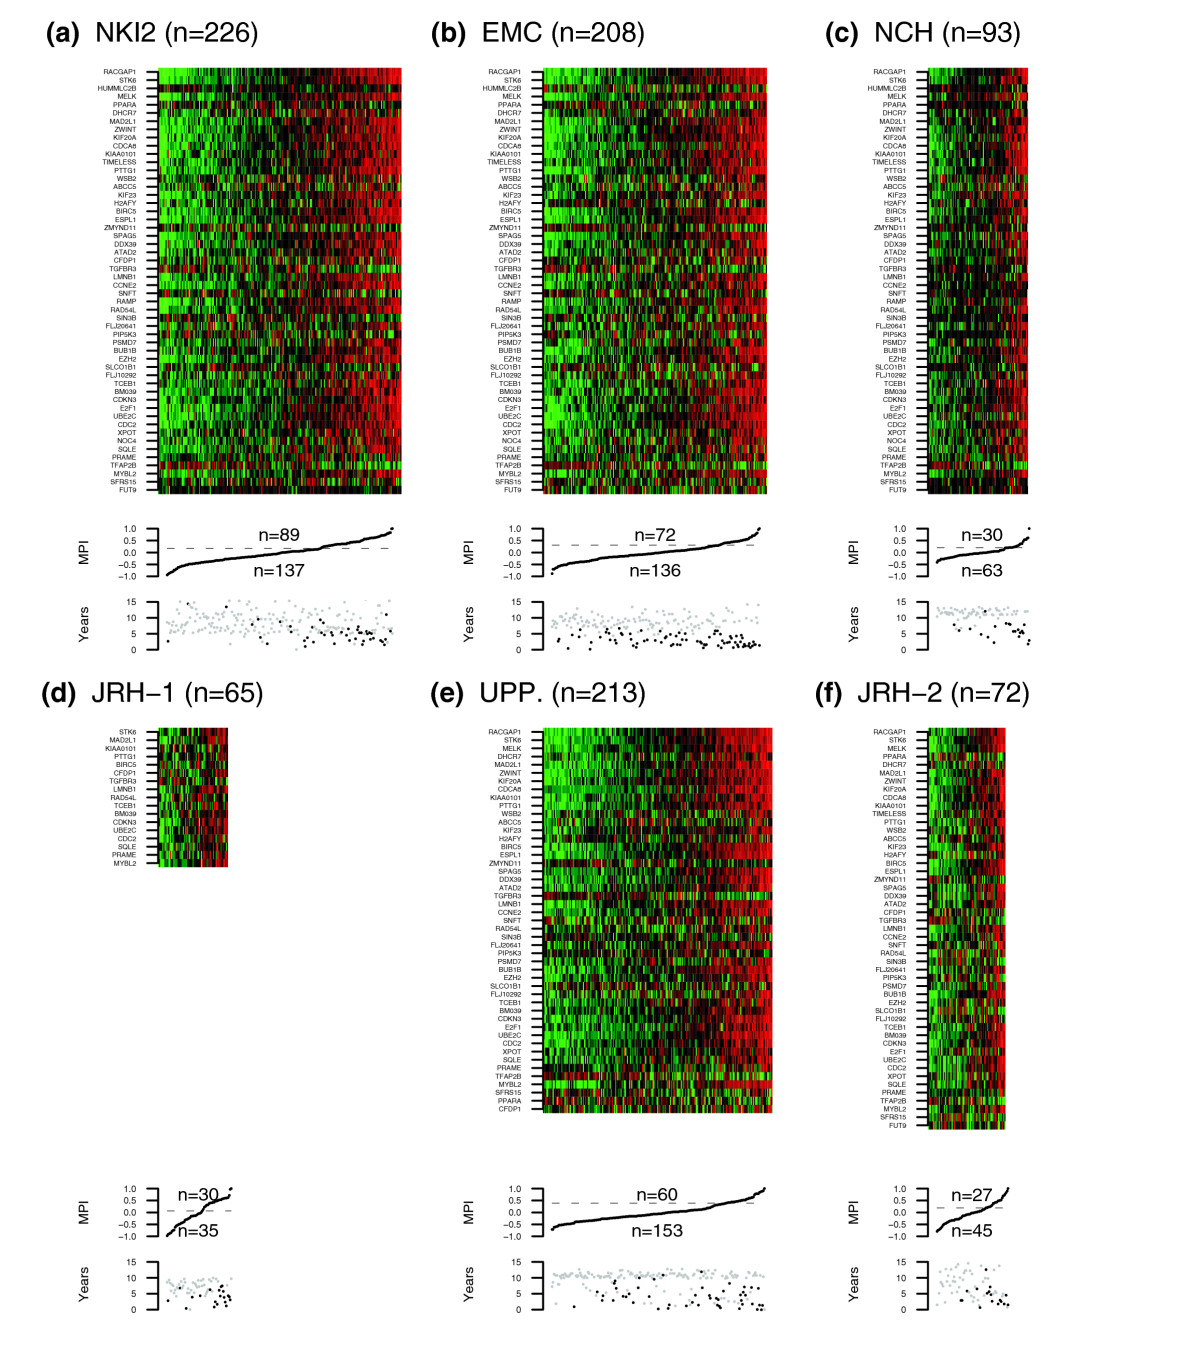 https://static-content.springer.com/image/art%3A10.1186%2Fgb-2006-7-10-r101/MediaObjects/13059_2006_Article_1369_Fig2_HTML.jpg